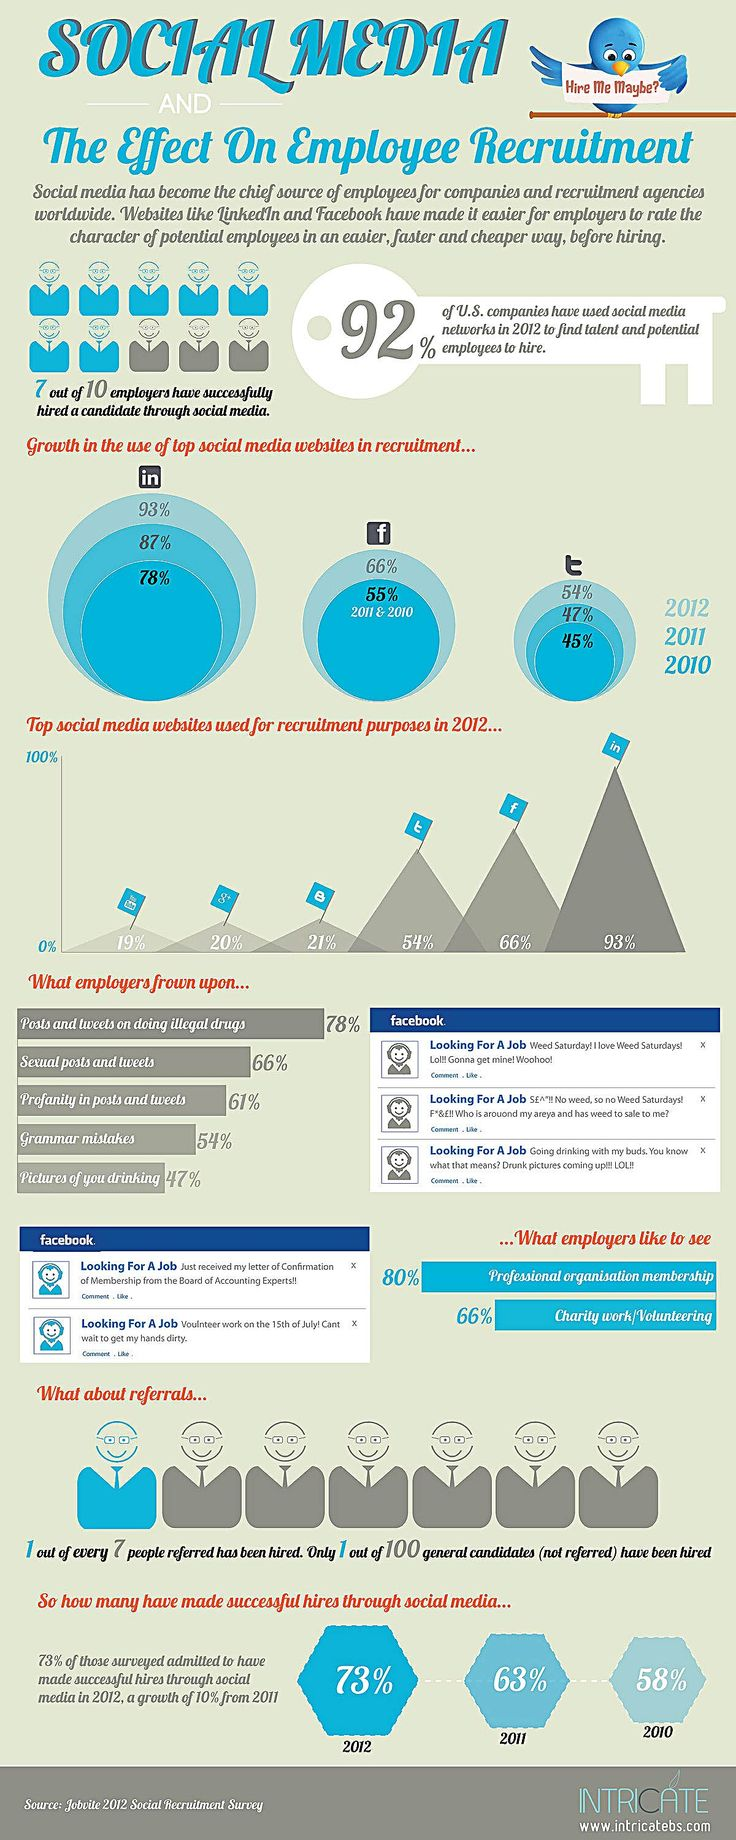 Social Media and the Effect on Employee Recruitment. #Infographic #Twitter #Social #Media #Recruiting